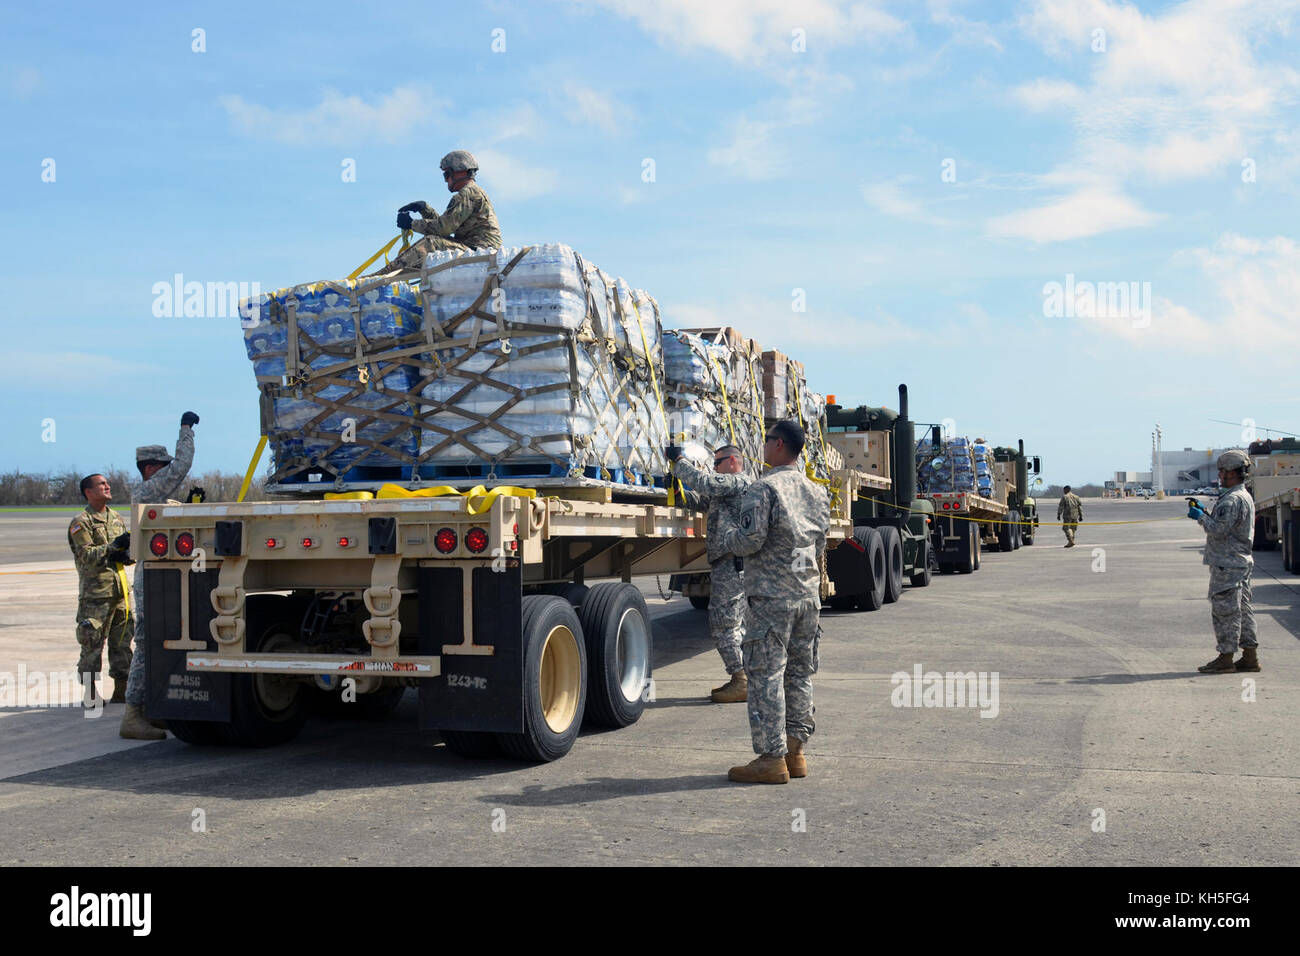 U.S. Army reservists assigned to the 1st Mission Support Command strap down food and water to distribution trucks - Stock Image